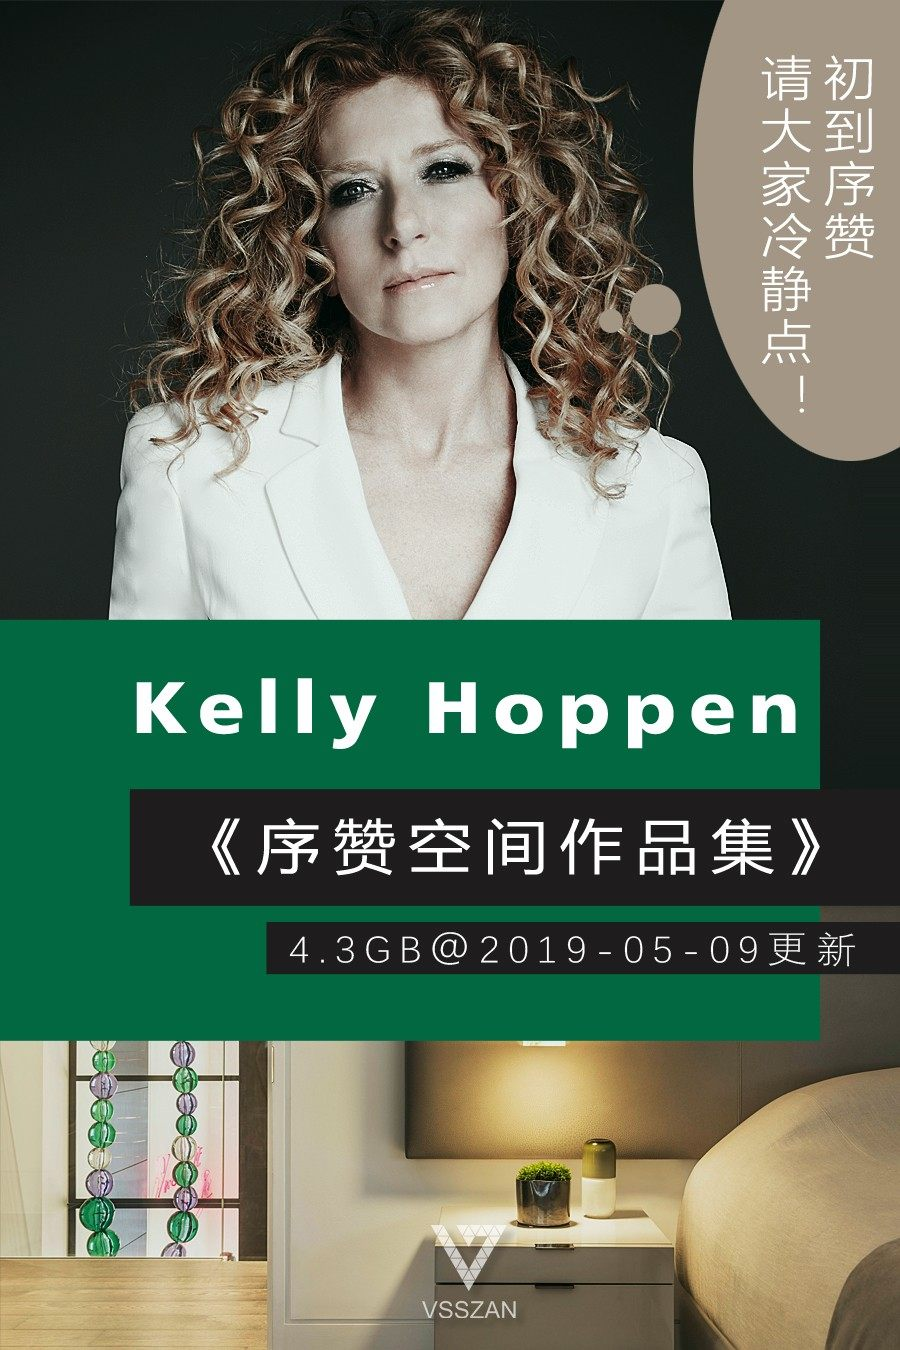 《序赞Kelly Hoppen作品集》@2019-05-09